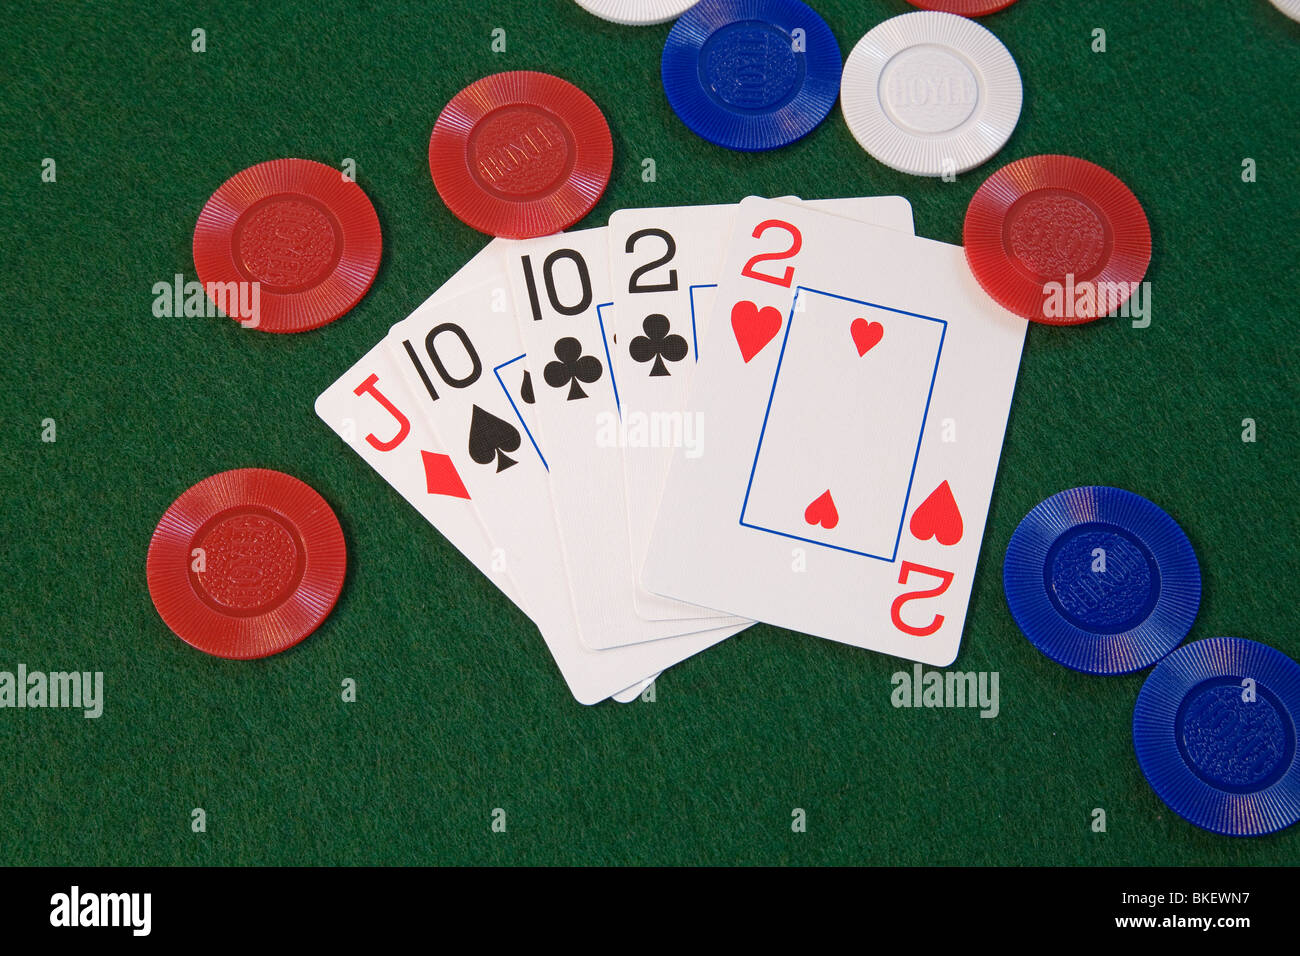 Two Pair Tens And Deuces On Chips A Hand In Five